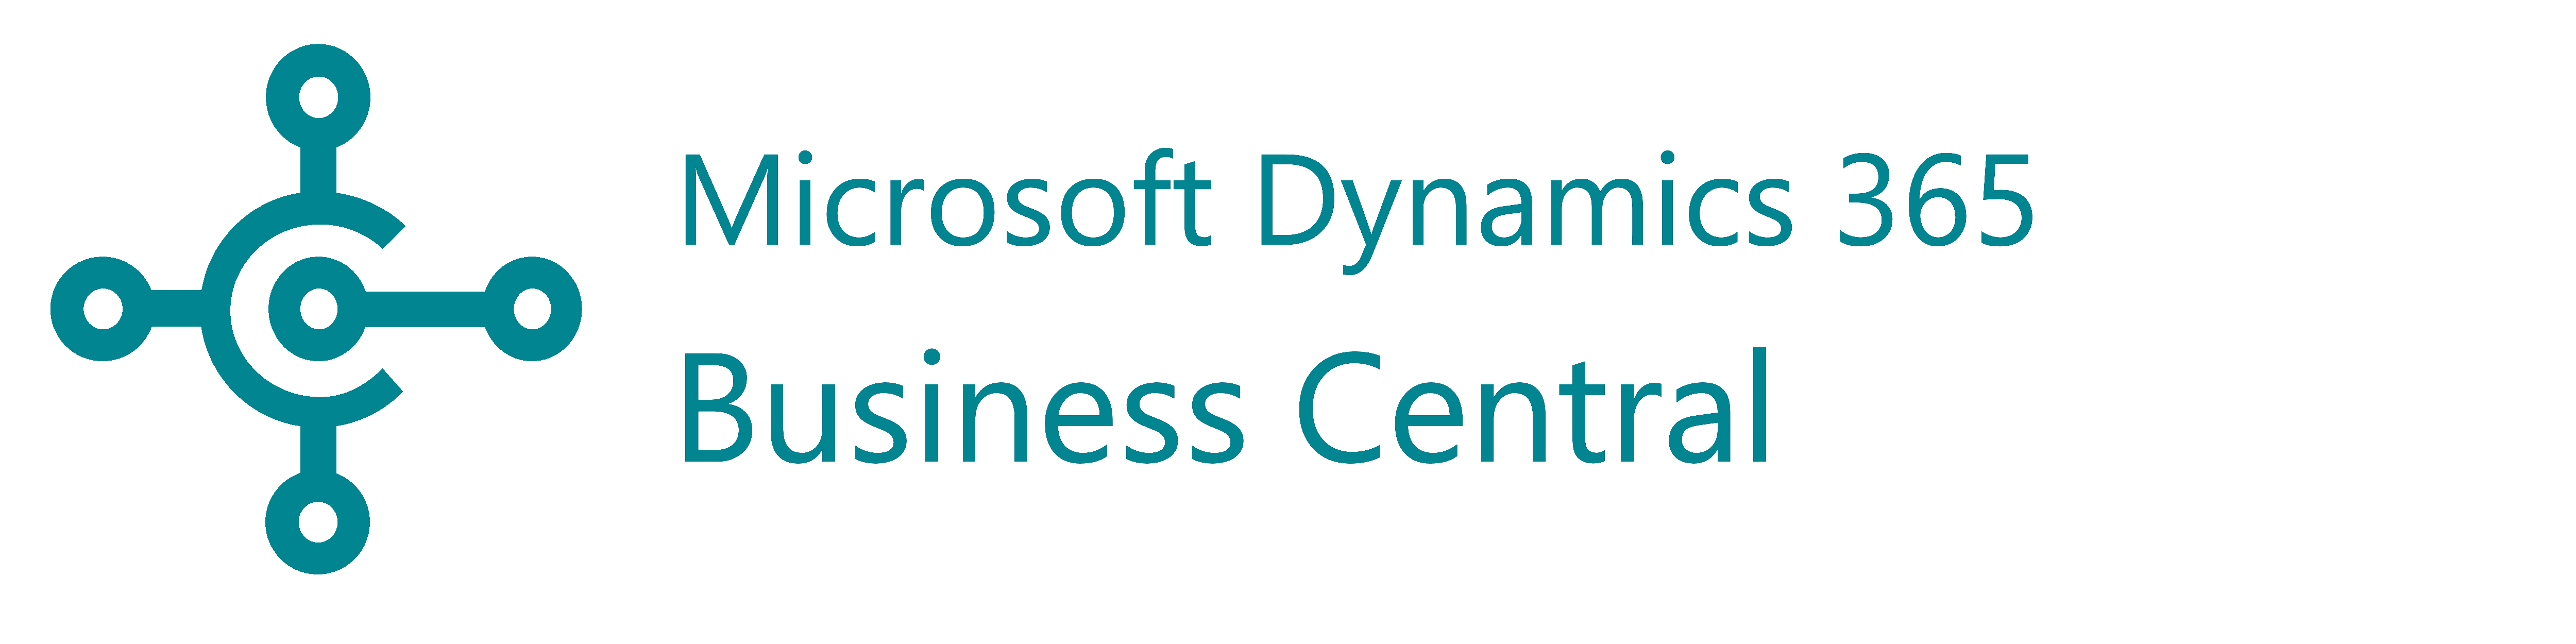 Microsft Business Central